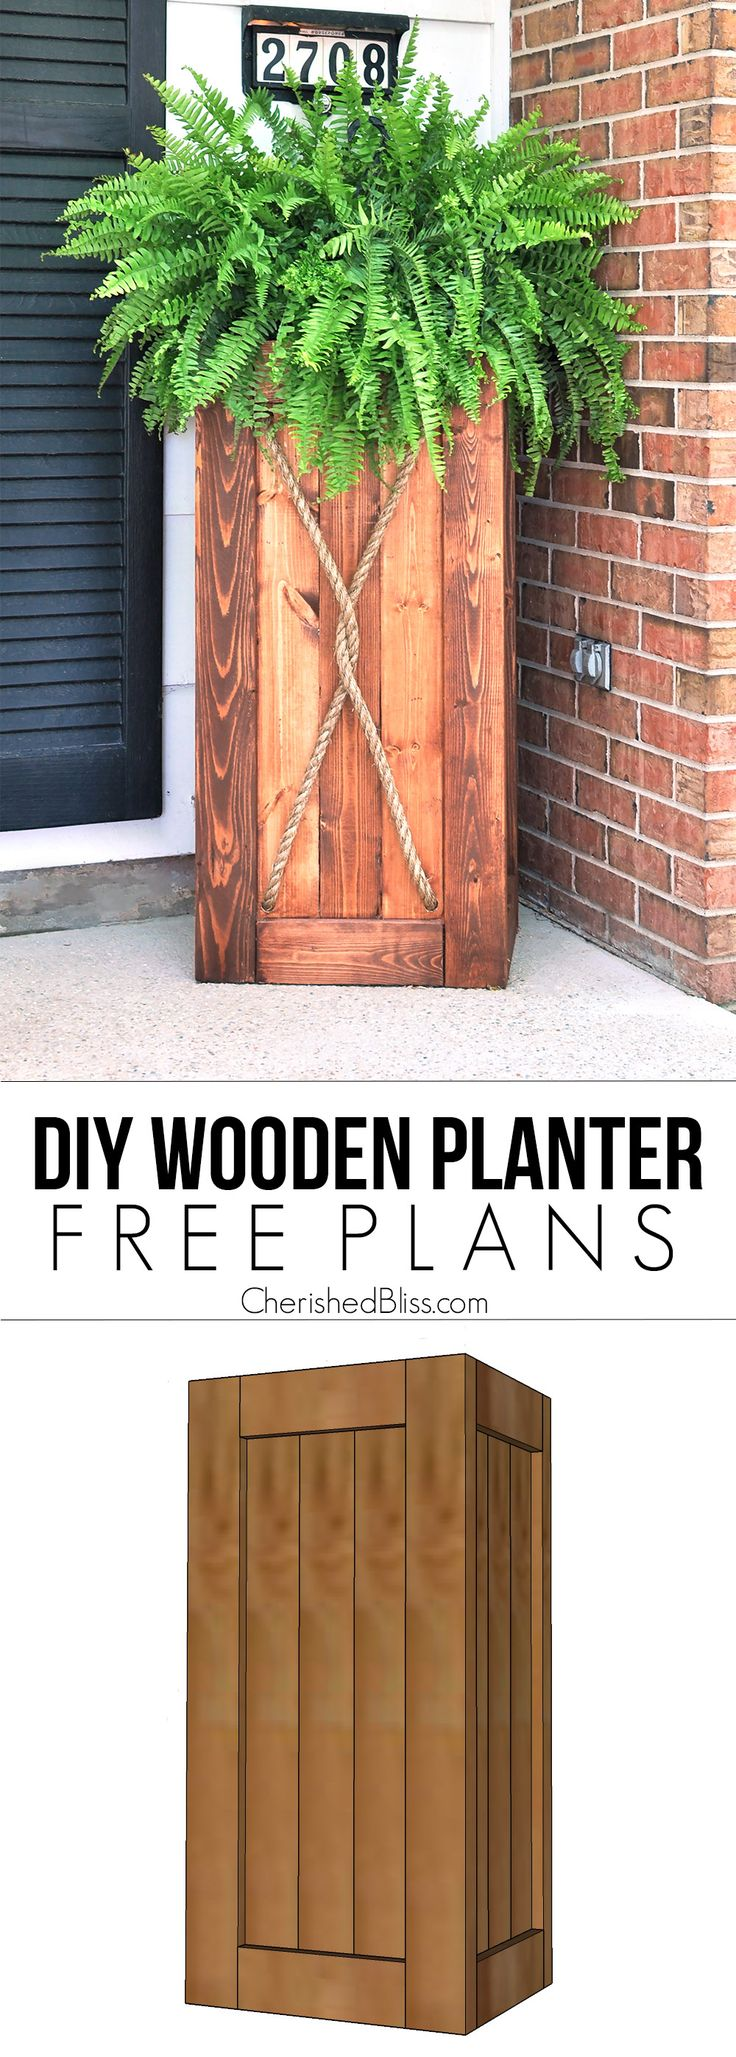 Build this Easy DIY Planter to add instant curb appeal to your home!